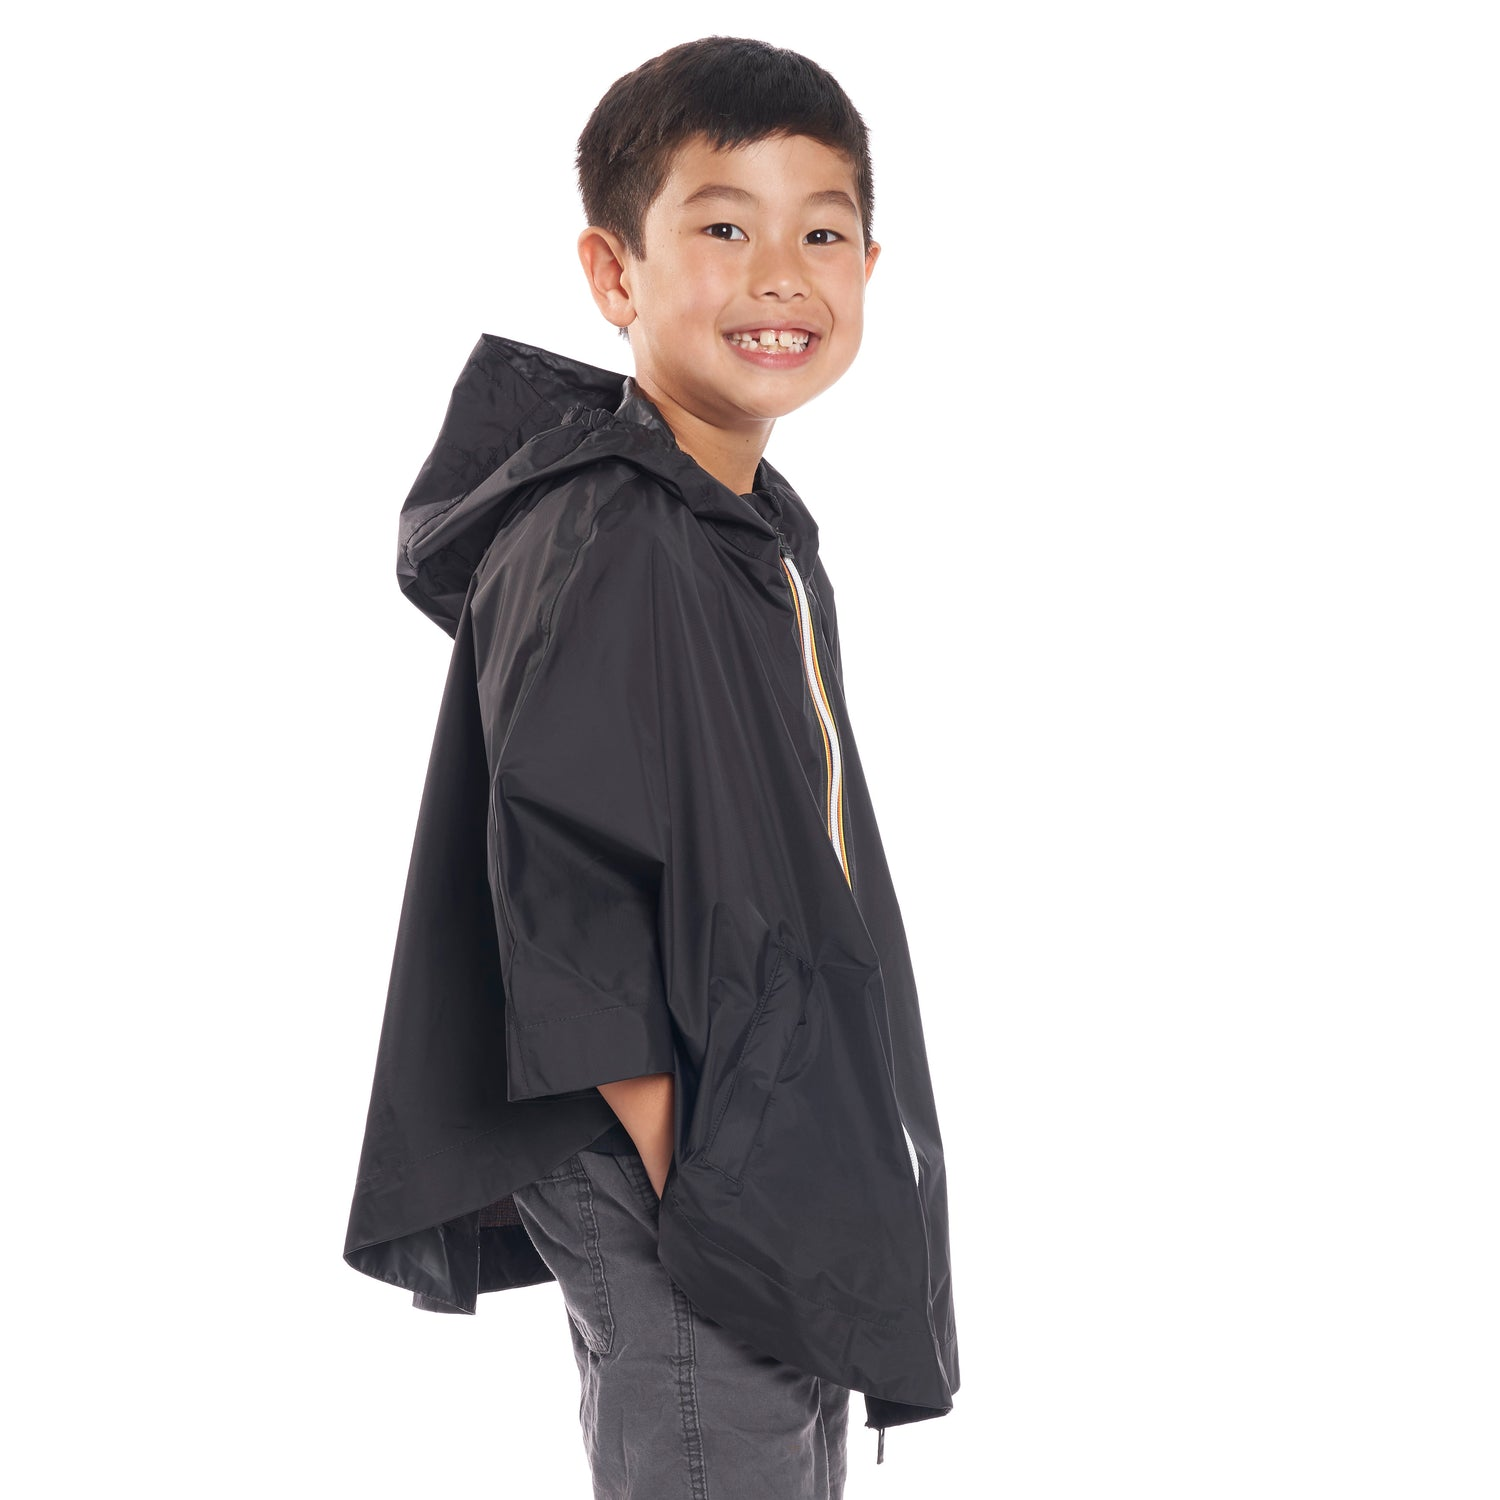 Kids Le Vrai 3.0 Morgan Poncho Black - Side